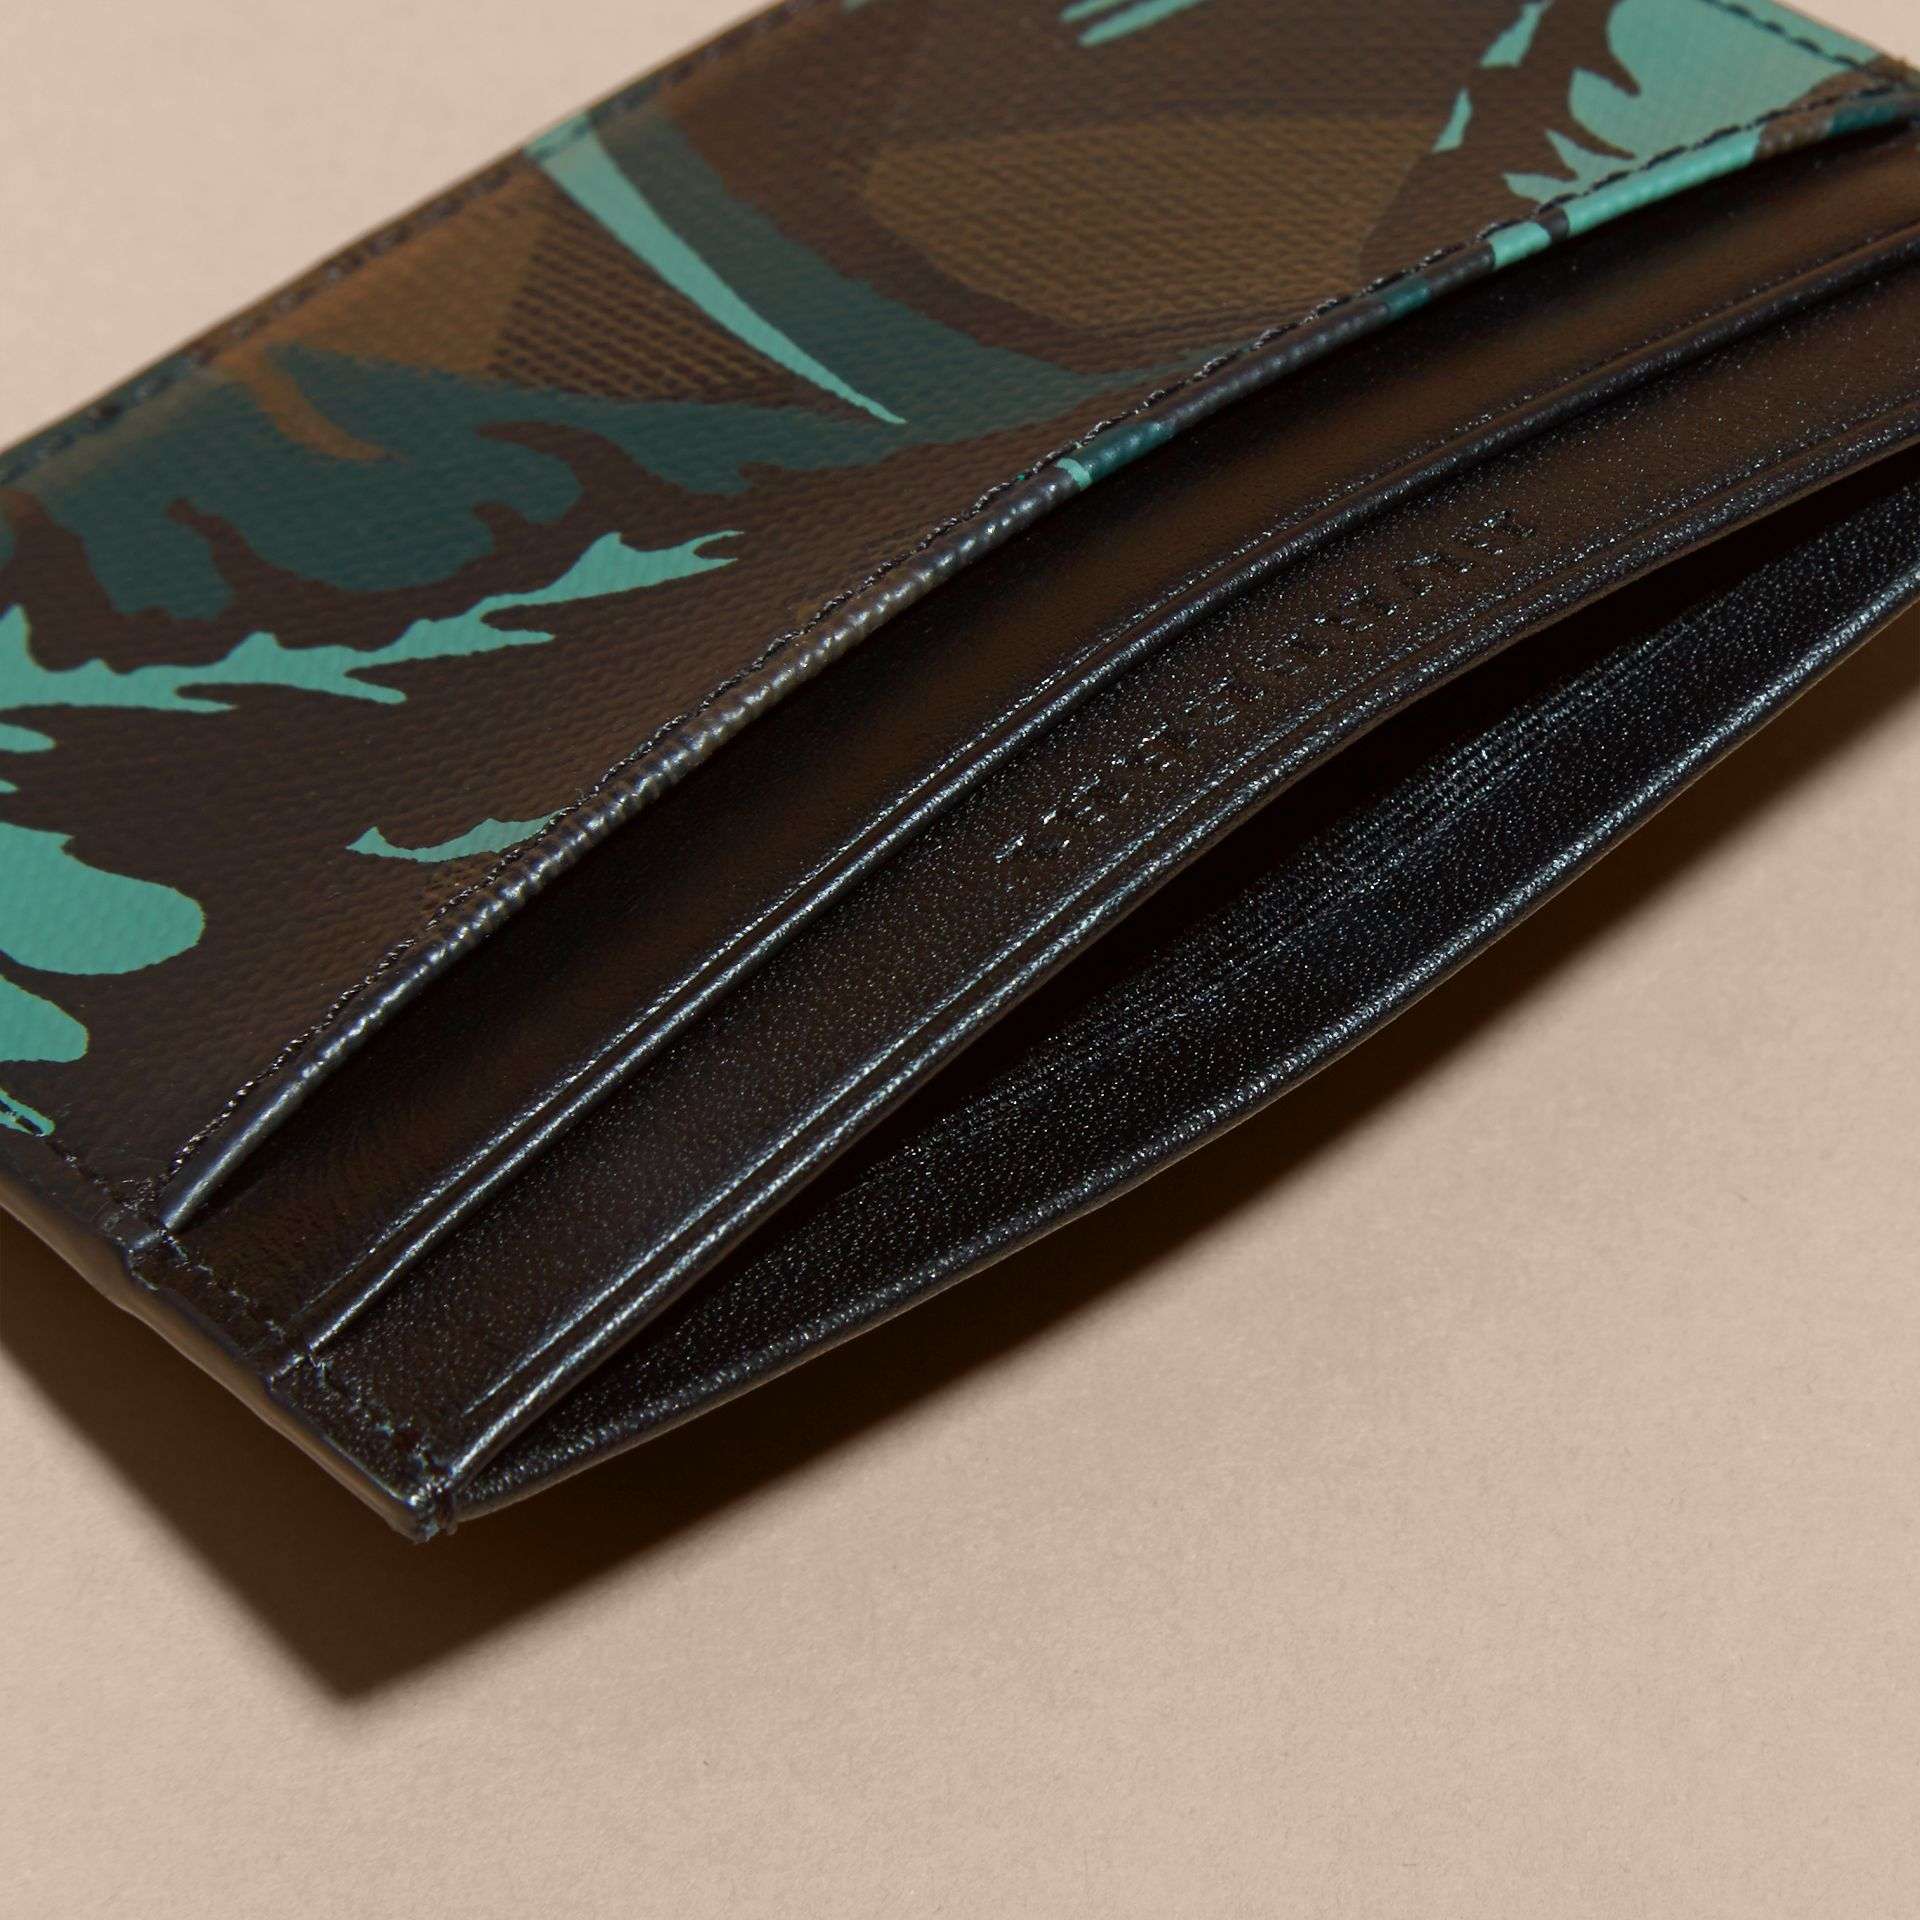 Floral Print London Check Card Case in Chocolate - Men | Burberry - gallery image 5